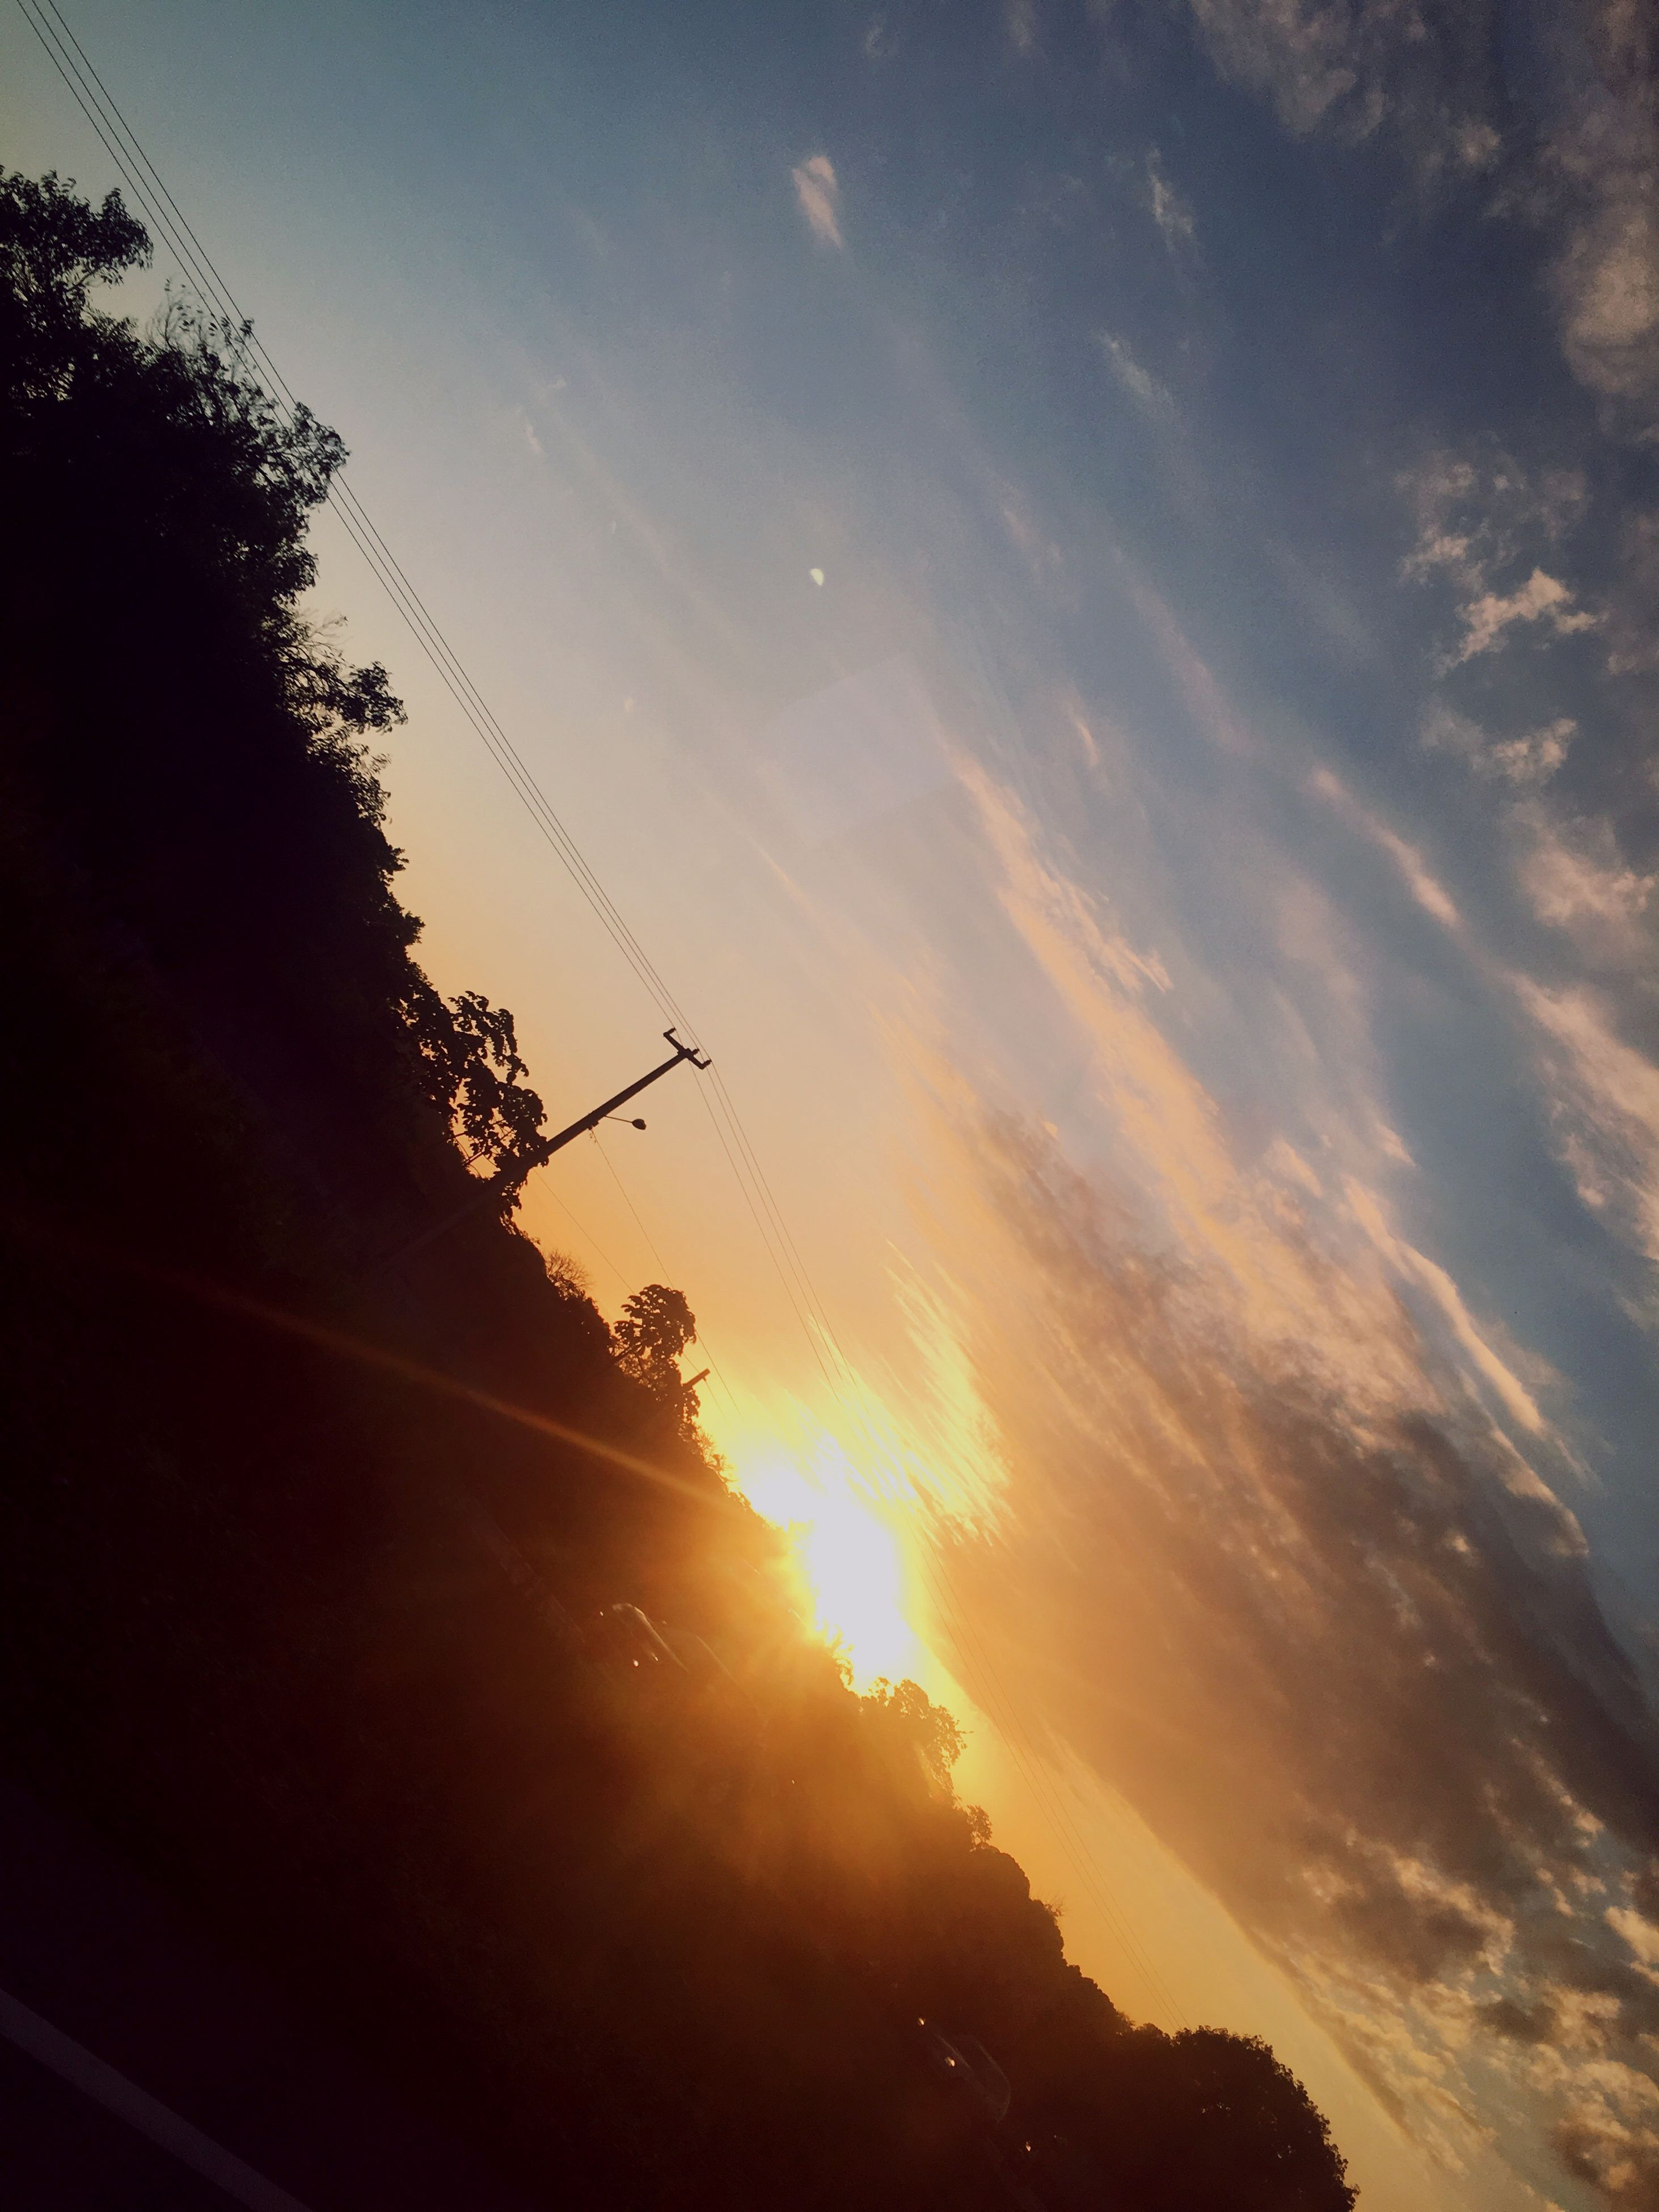 sunset, sky, nature, silhouette, sun, low angle view, sunlight, beauty in nature, outdoors, no people, scenics, tree, day